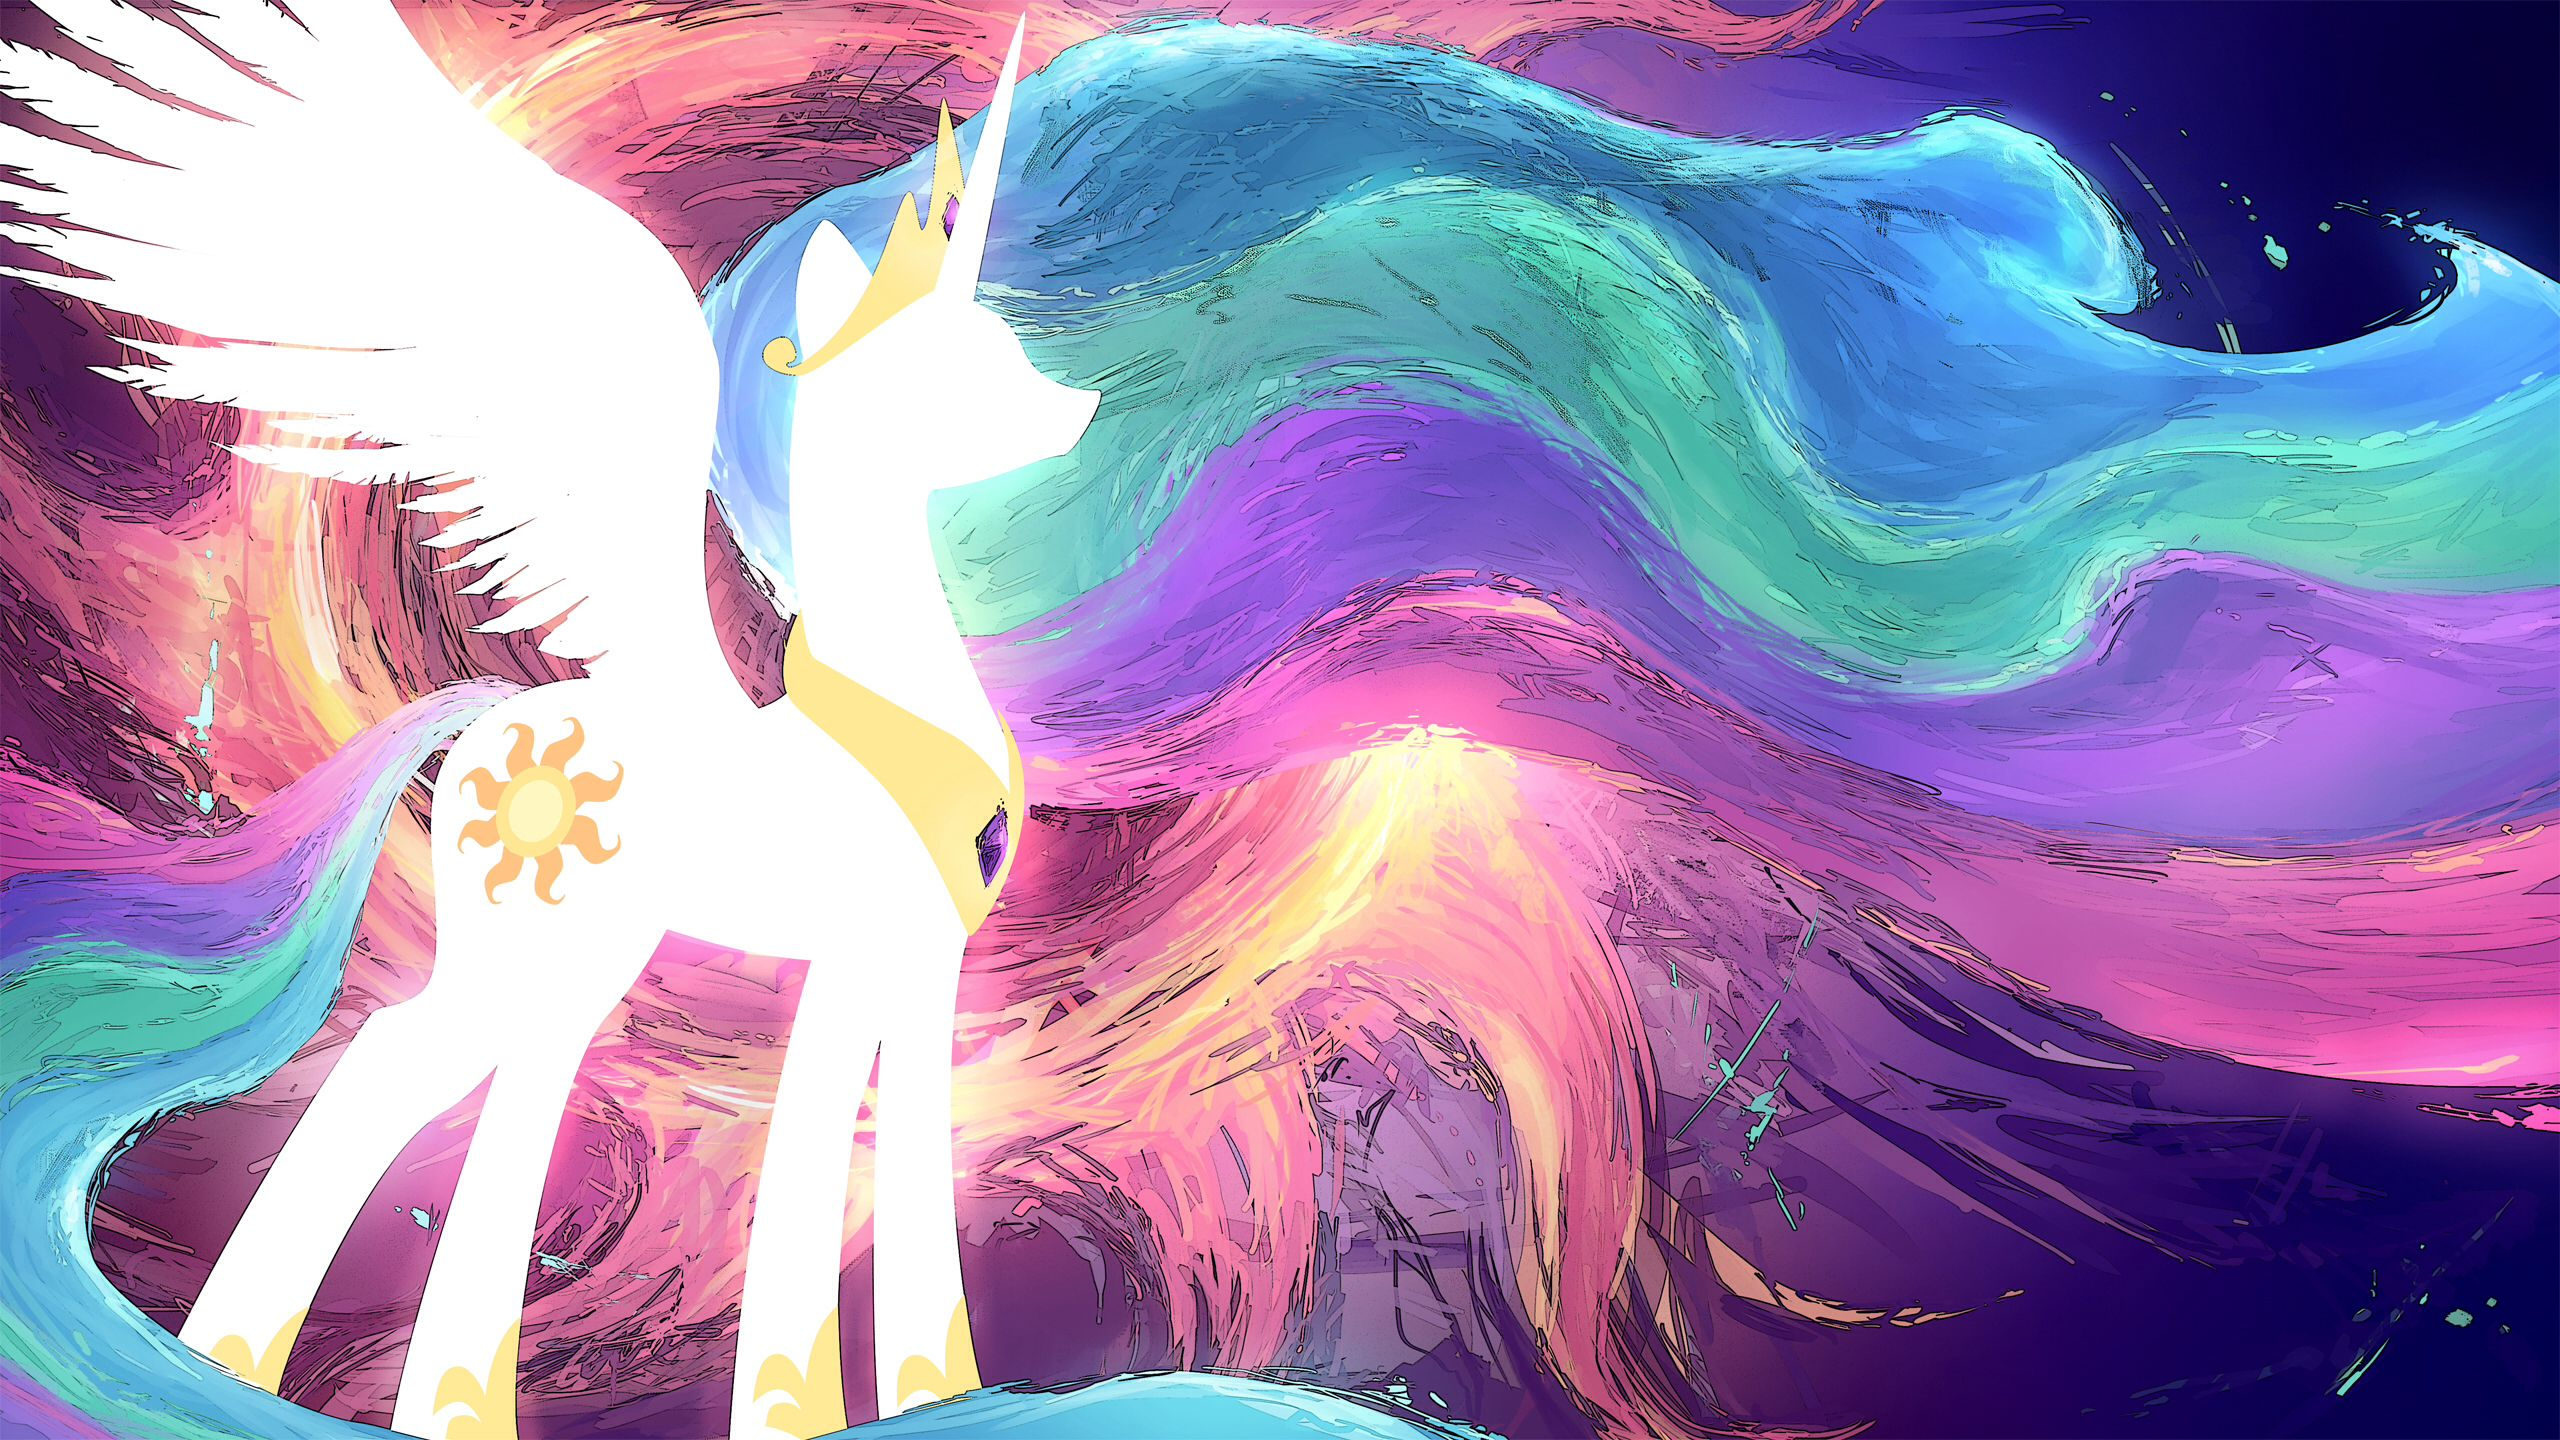 Found Some Awesome Wallpaper The Ponification Of My Computer Is